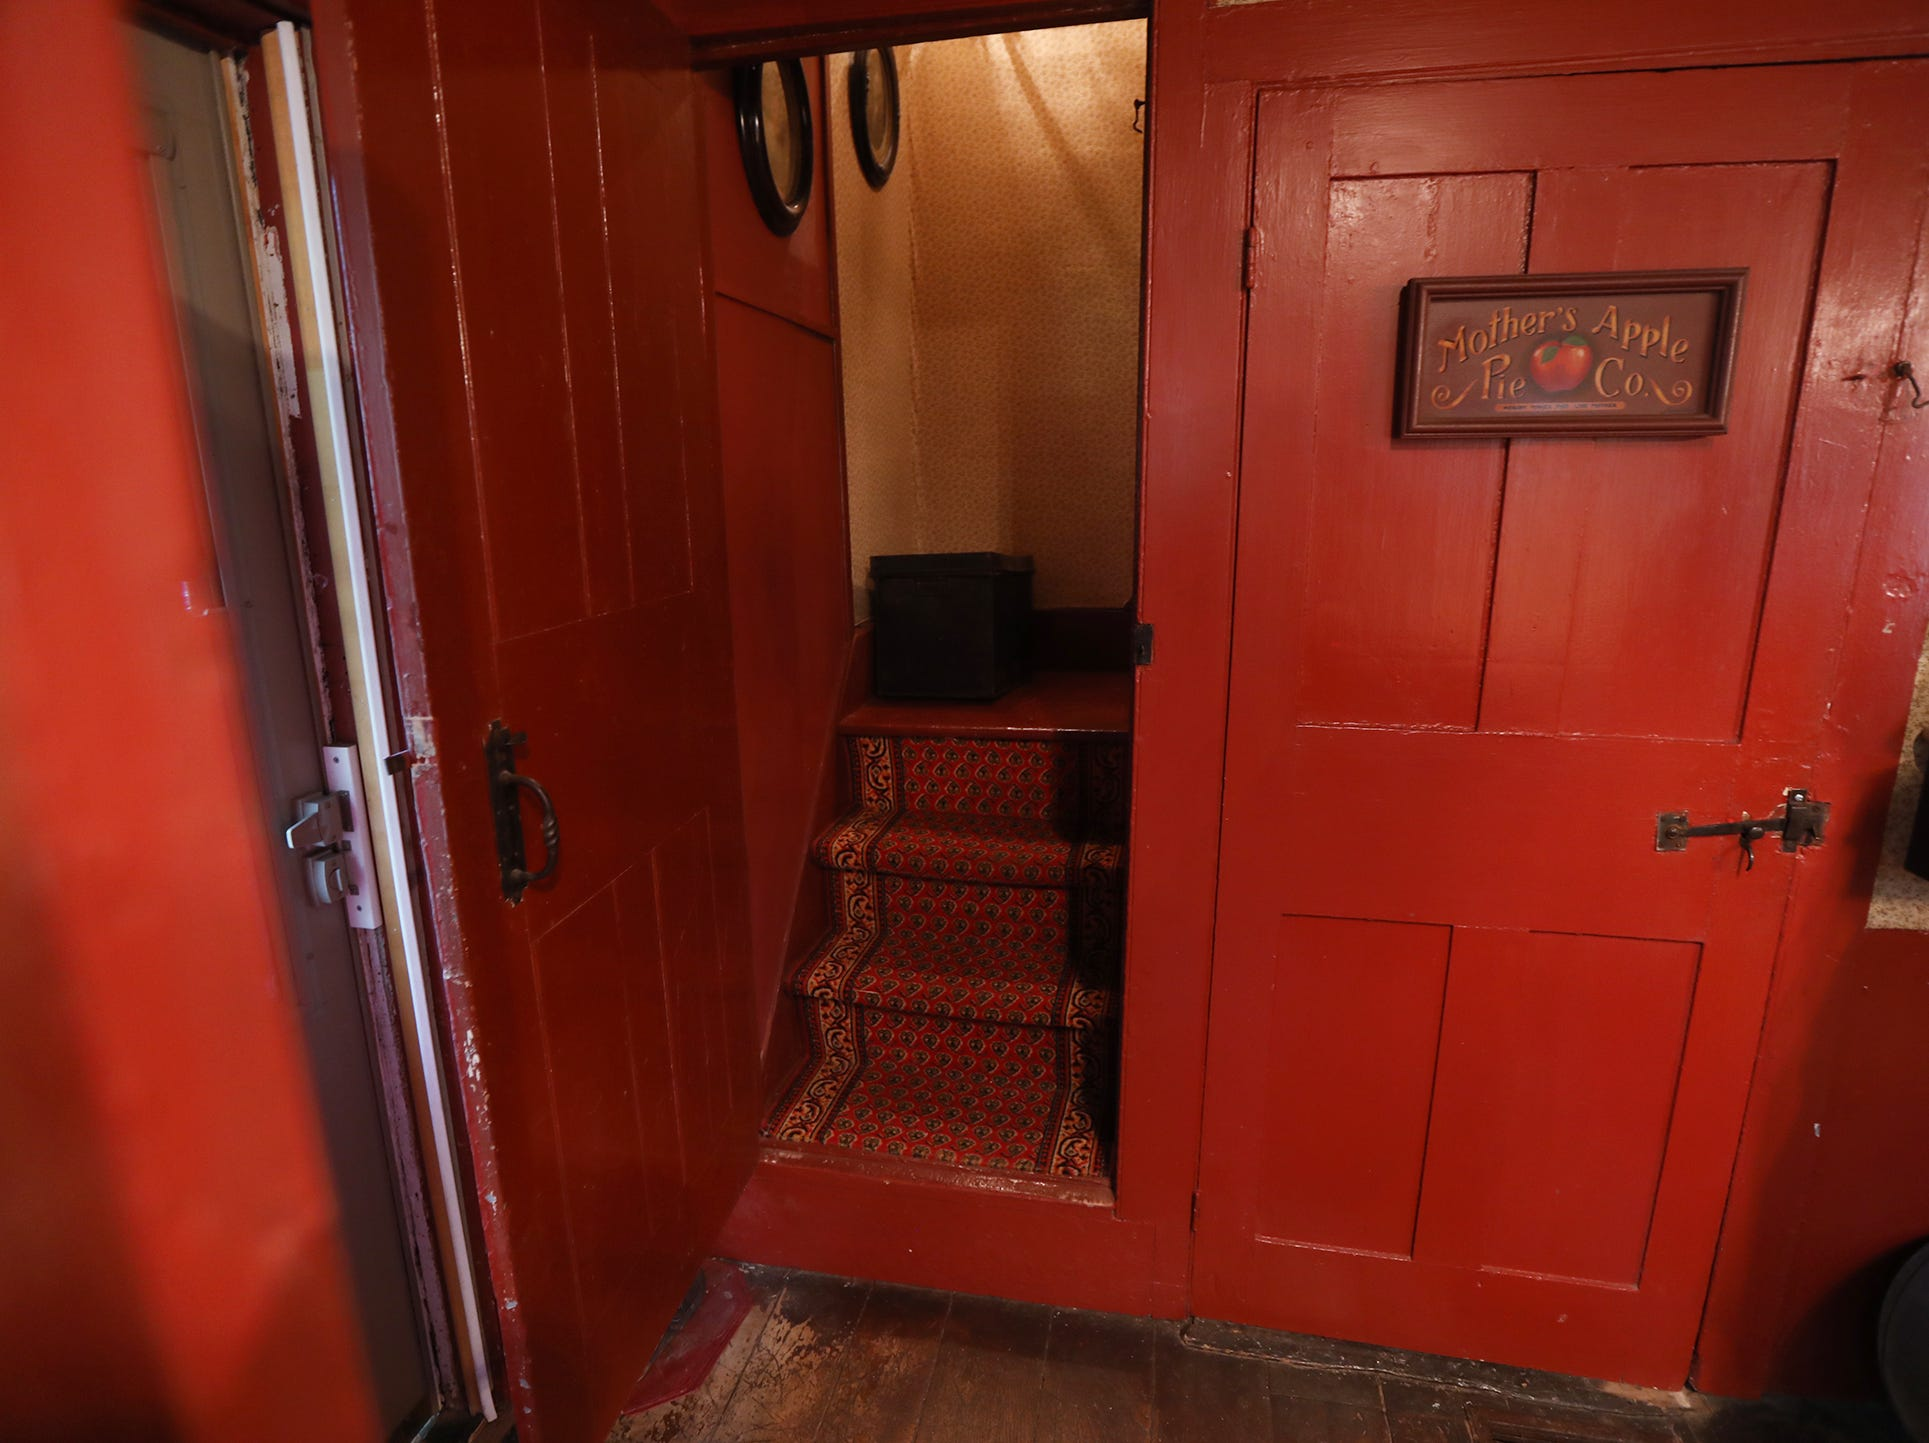 In the kitchen, a servants staircase leads up to several bedrooms and the other door leads to the basement.  The doors in the home have their original hardware.